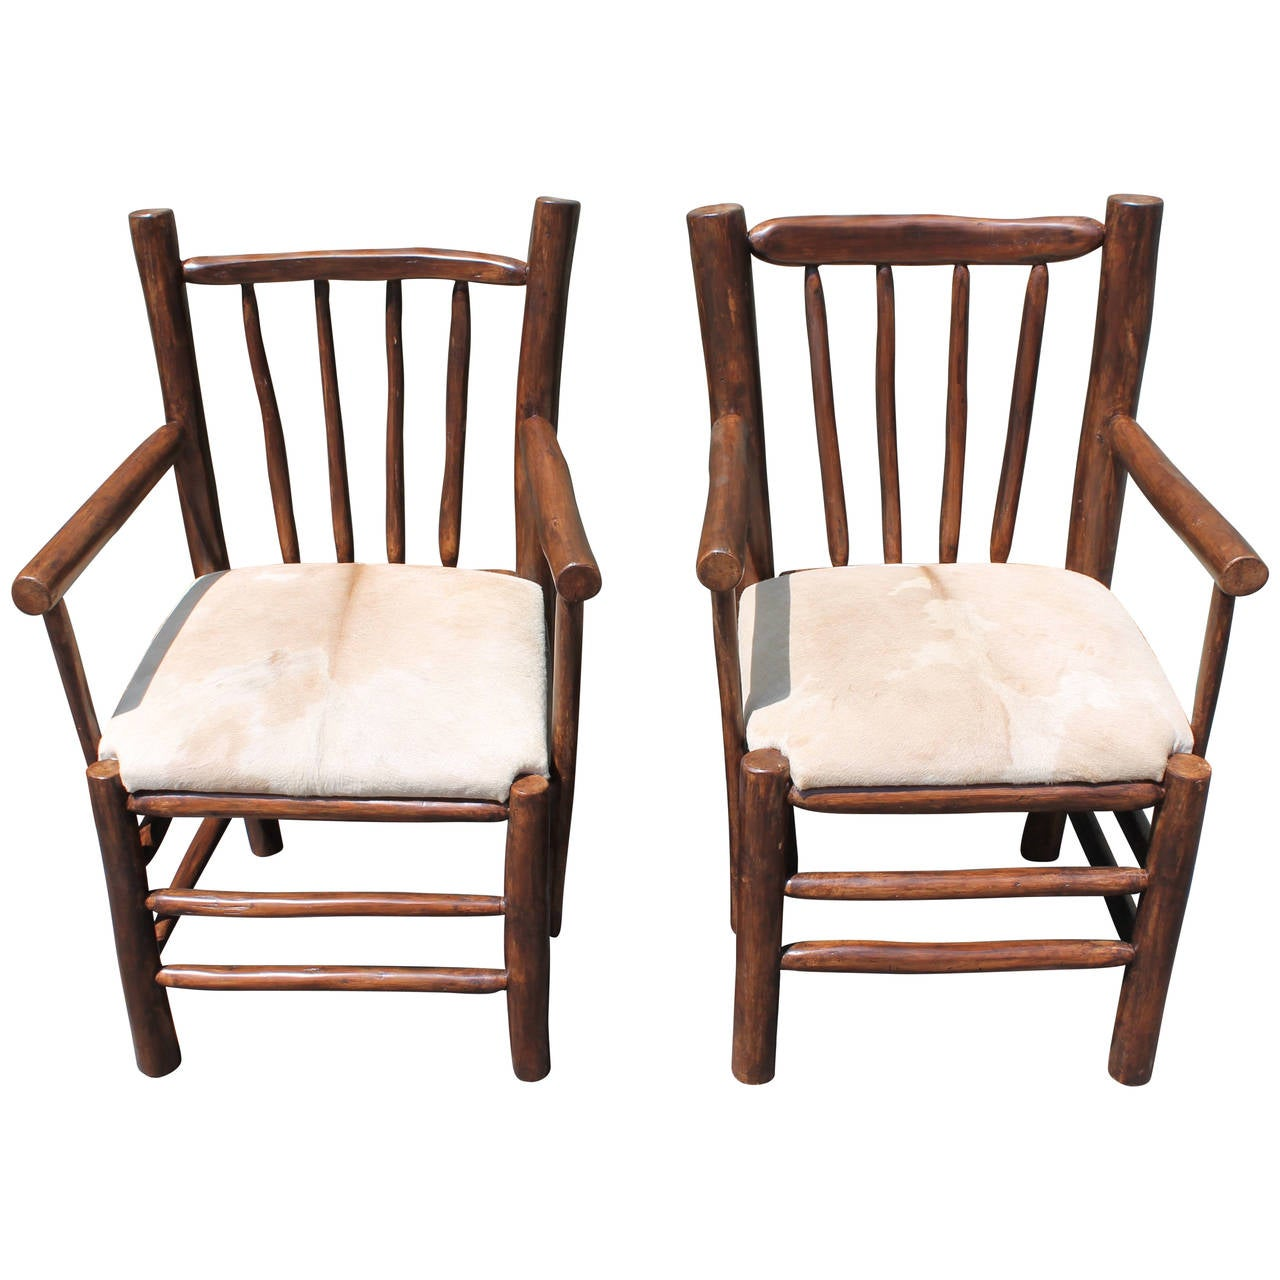 Images Animal Hide Accent Chairs Wall Street Journal: Popular Adirondack Chairs For Sale Los Angeles